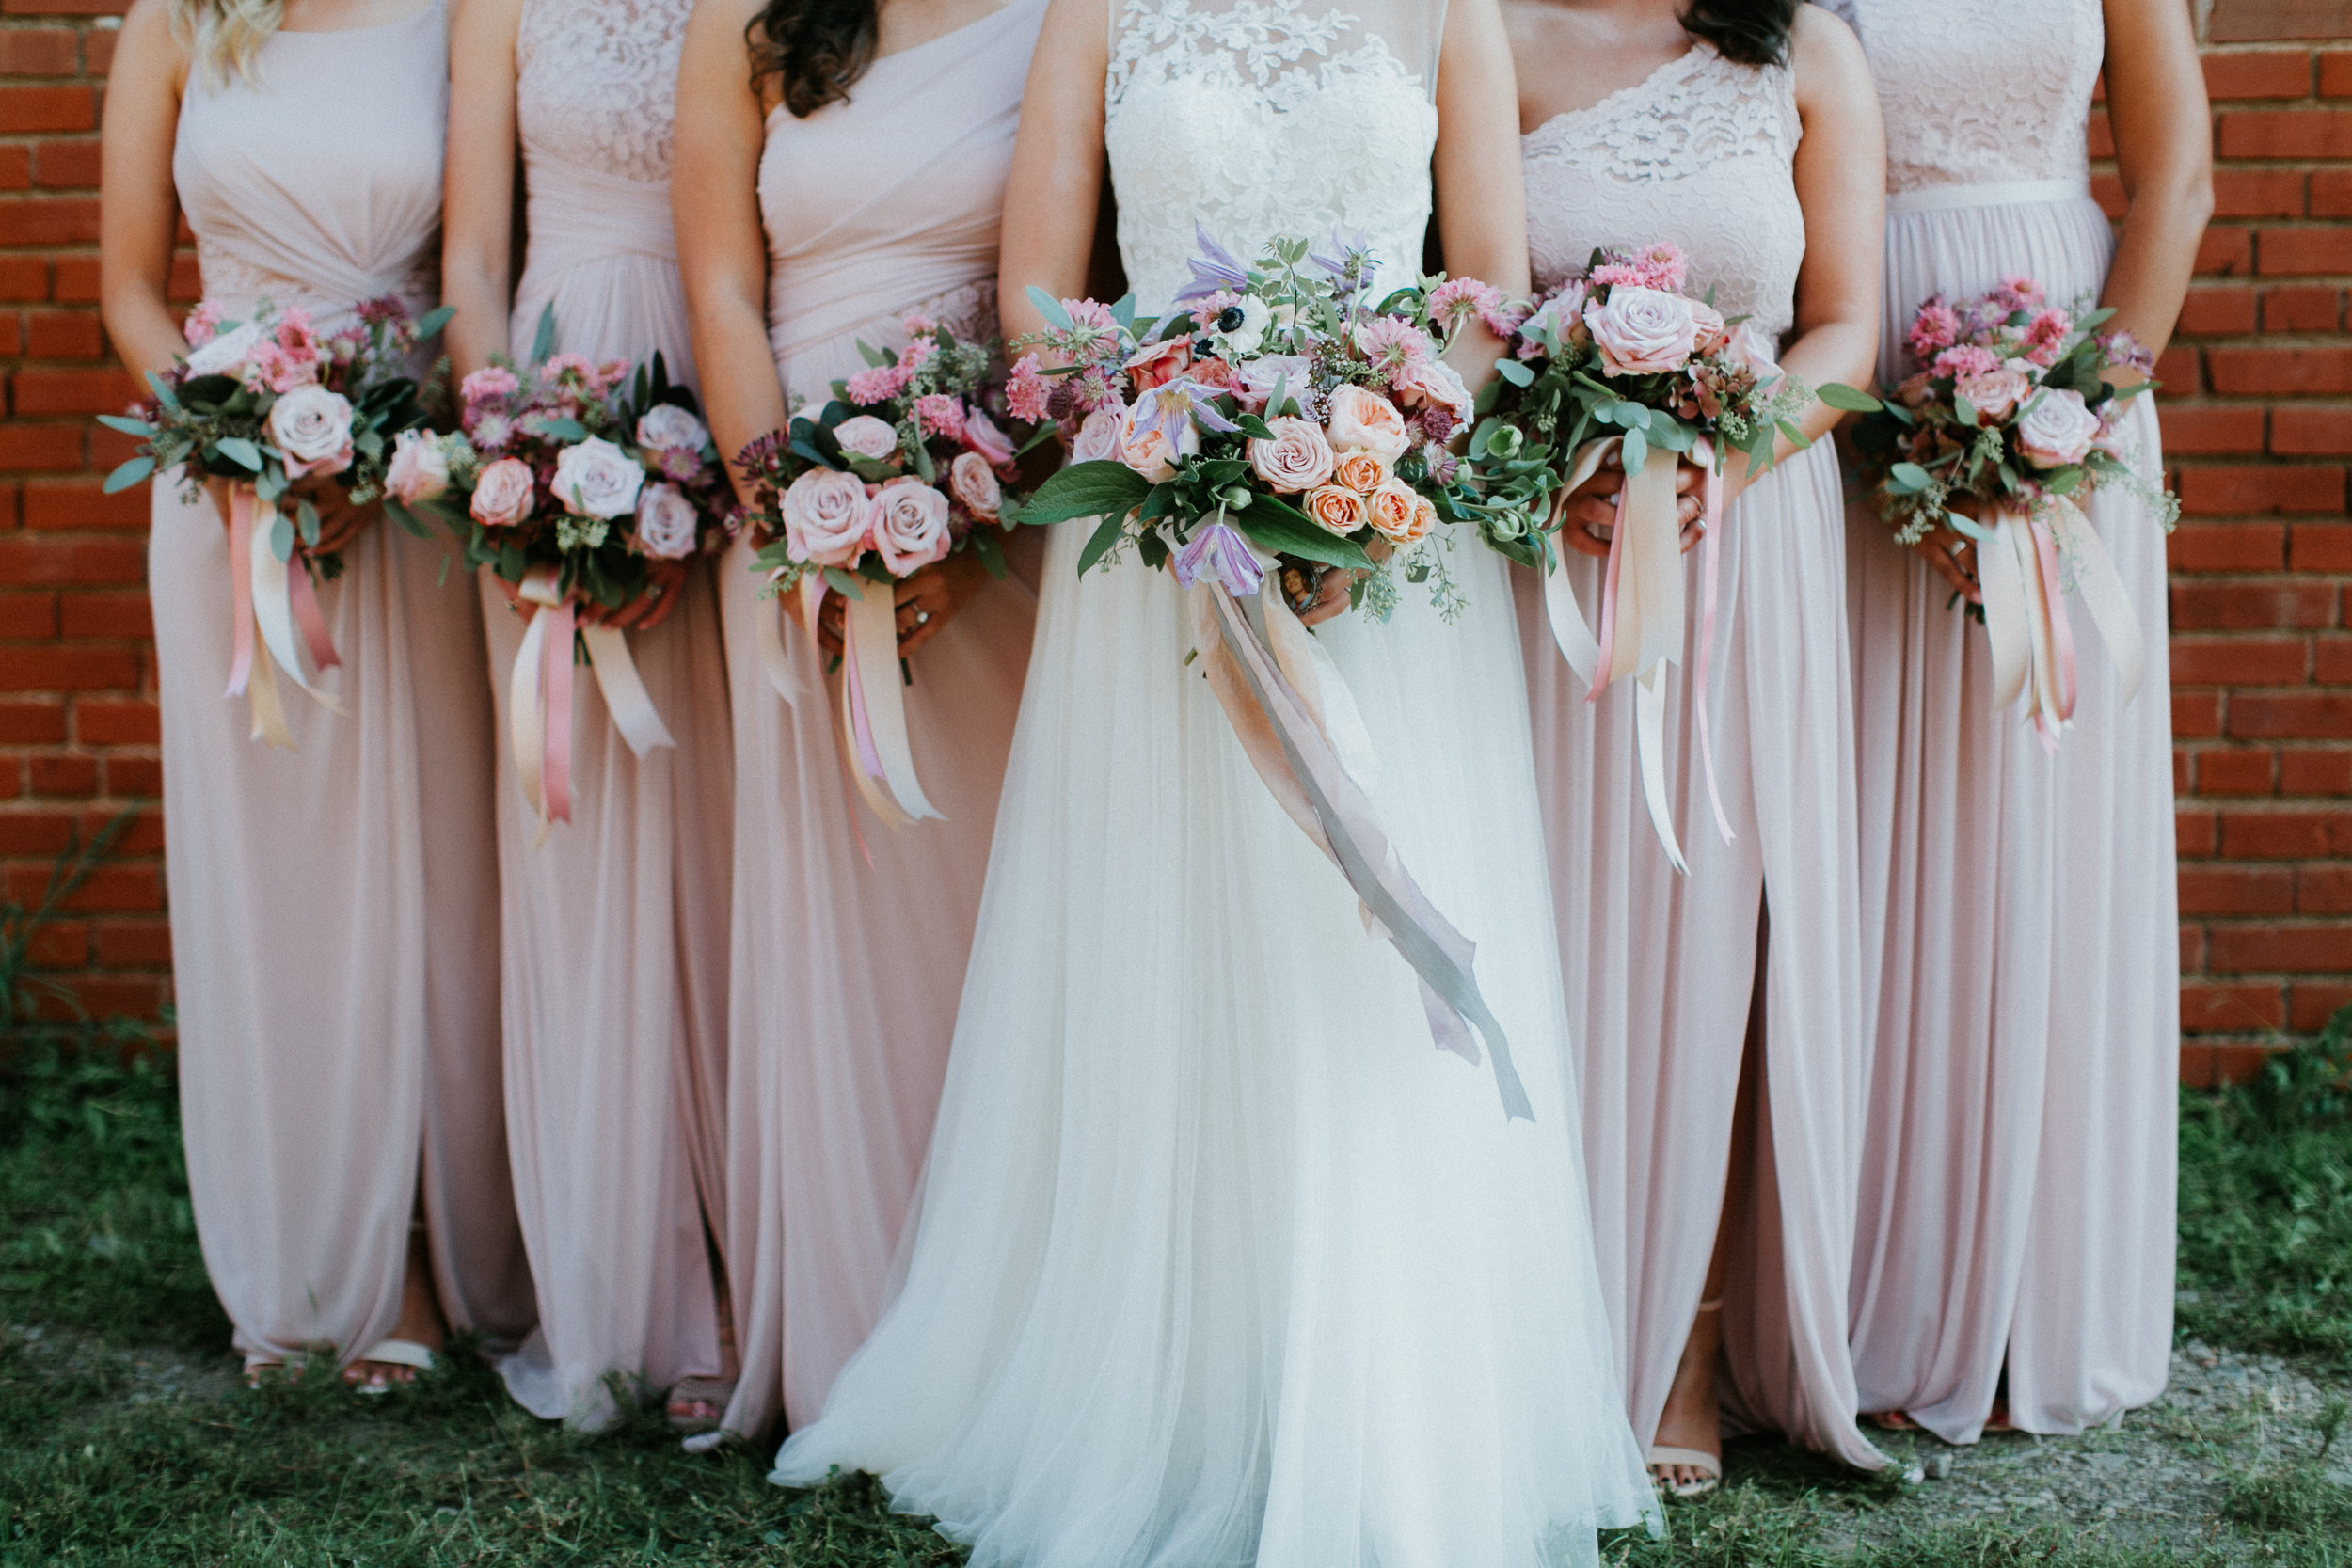 Bride & Bridesmaids with lush garden style bouquets in shades of mauve, peach and lavendar